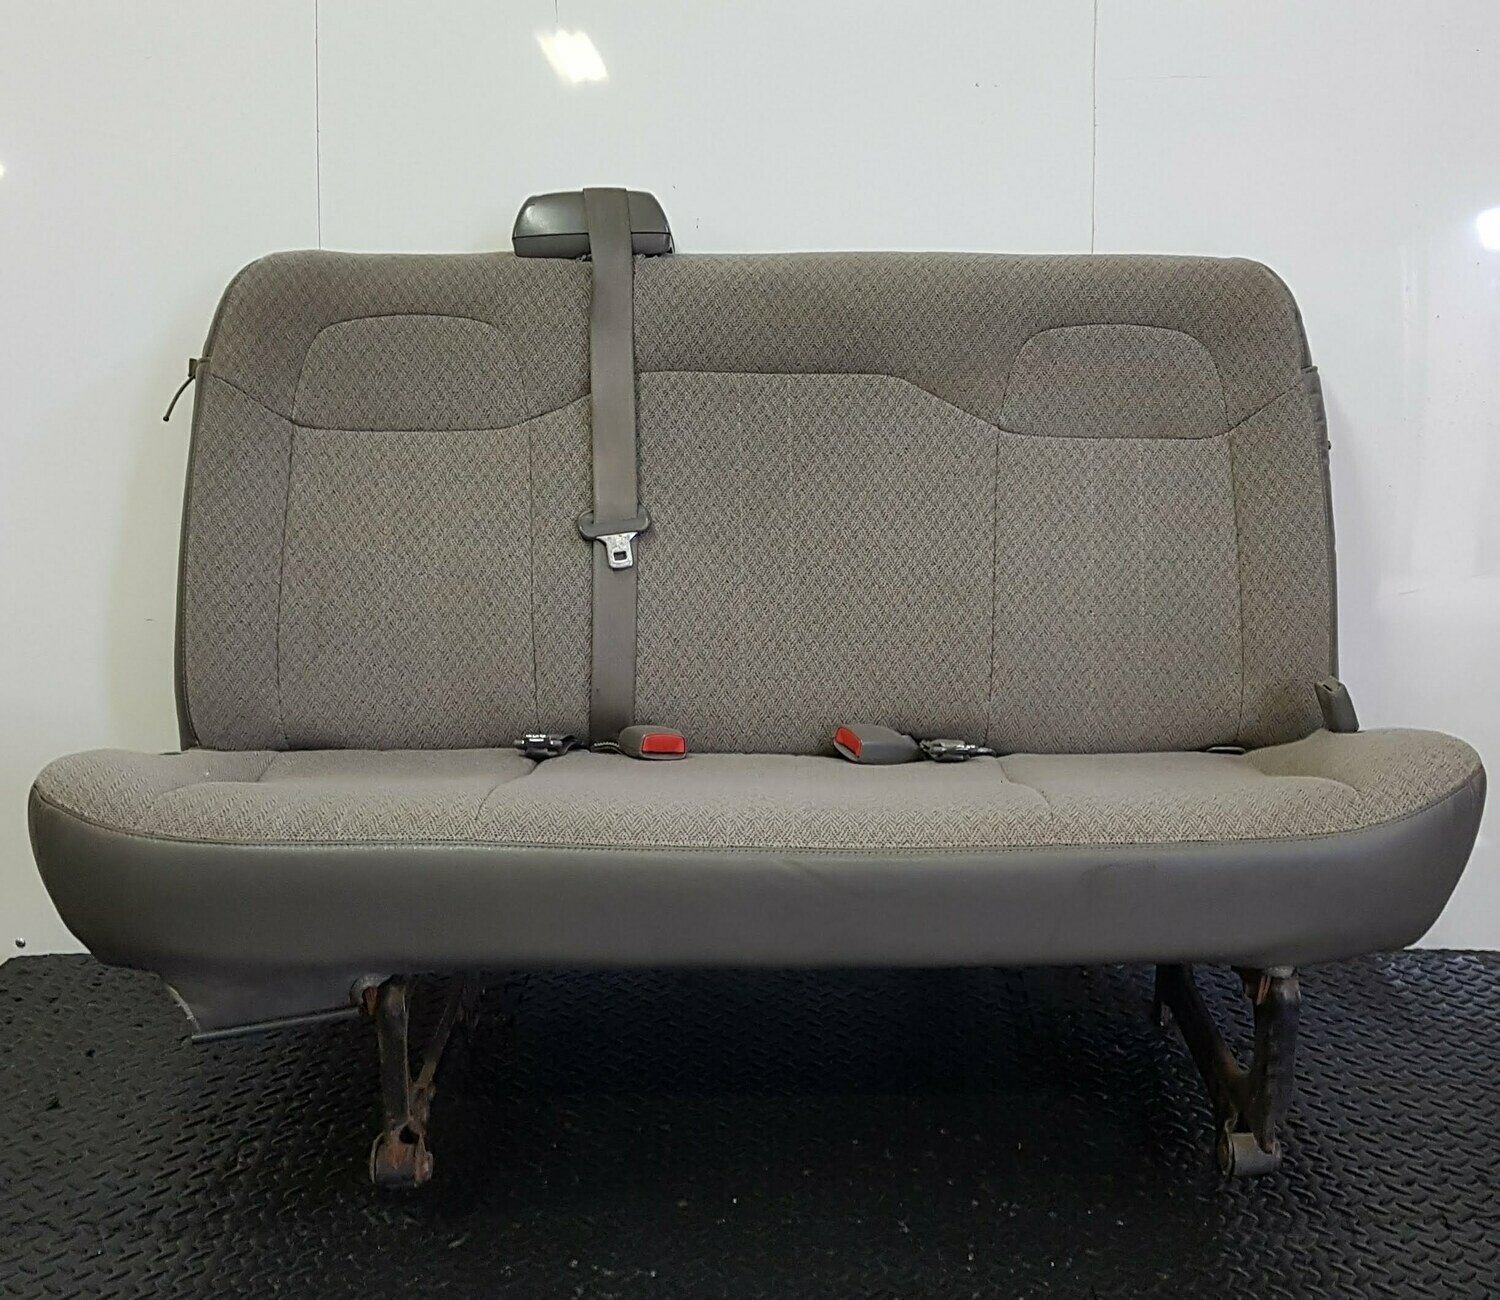 Chevy Express Bench Seat